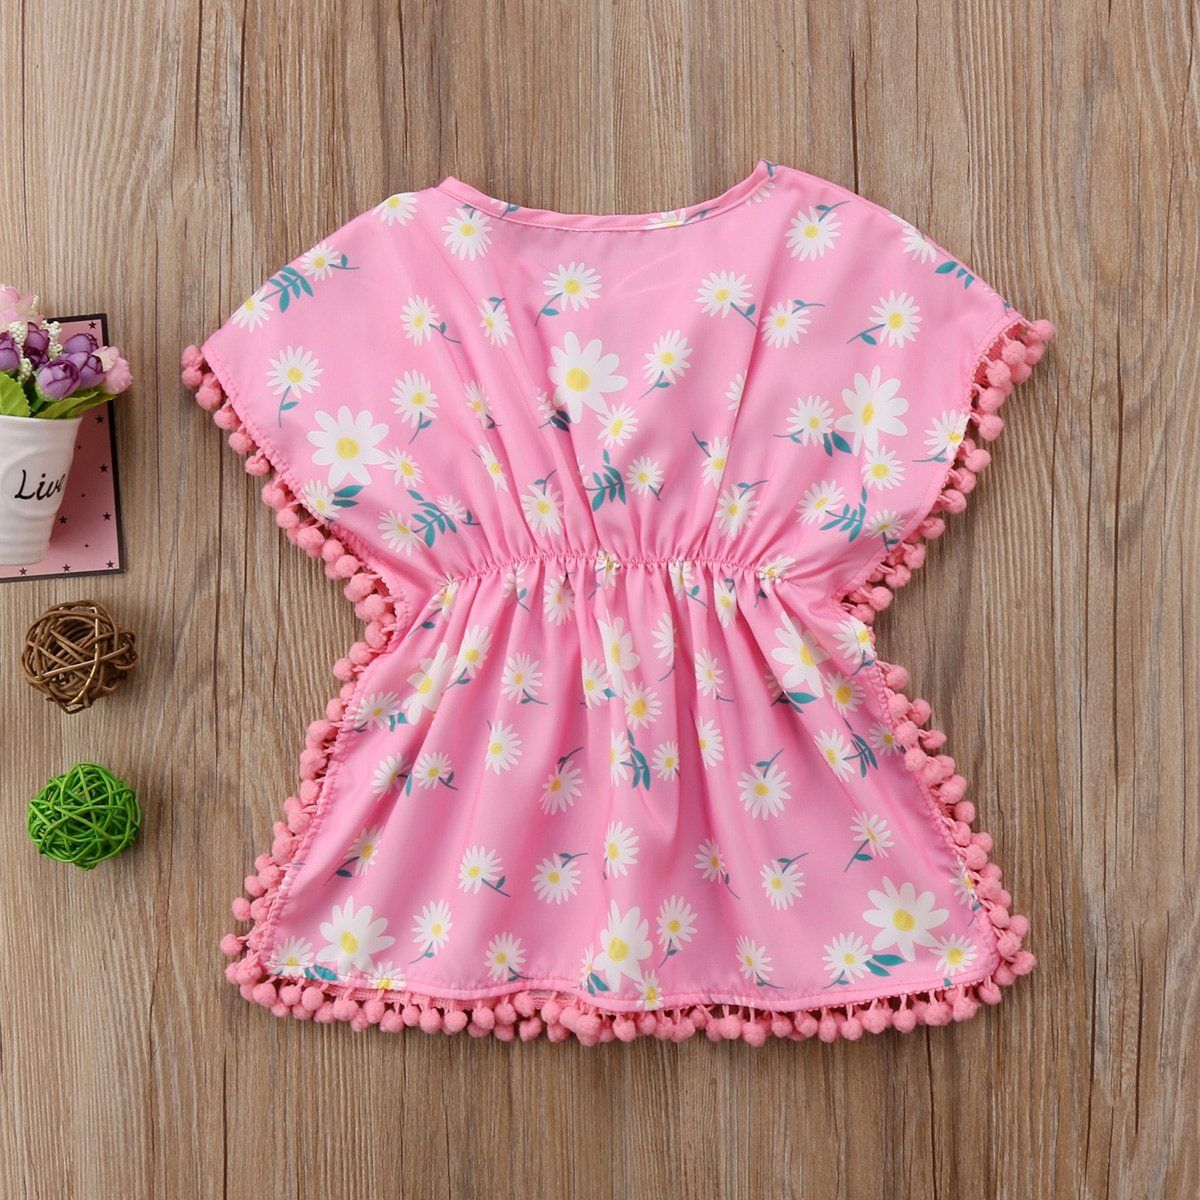 Brand New Infants Toddlers Floral Pom Pom Beach Sundress Sizes 6m 4t Baby Girl Frock Designs Cotton Baby Girl Frock Design Baby Frocks Designs [ 1200 x 1200 Pixel ]